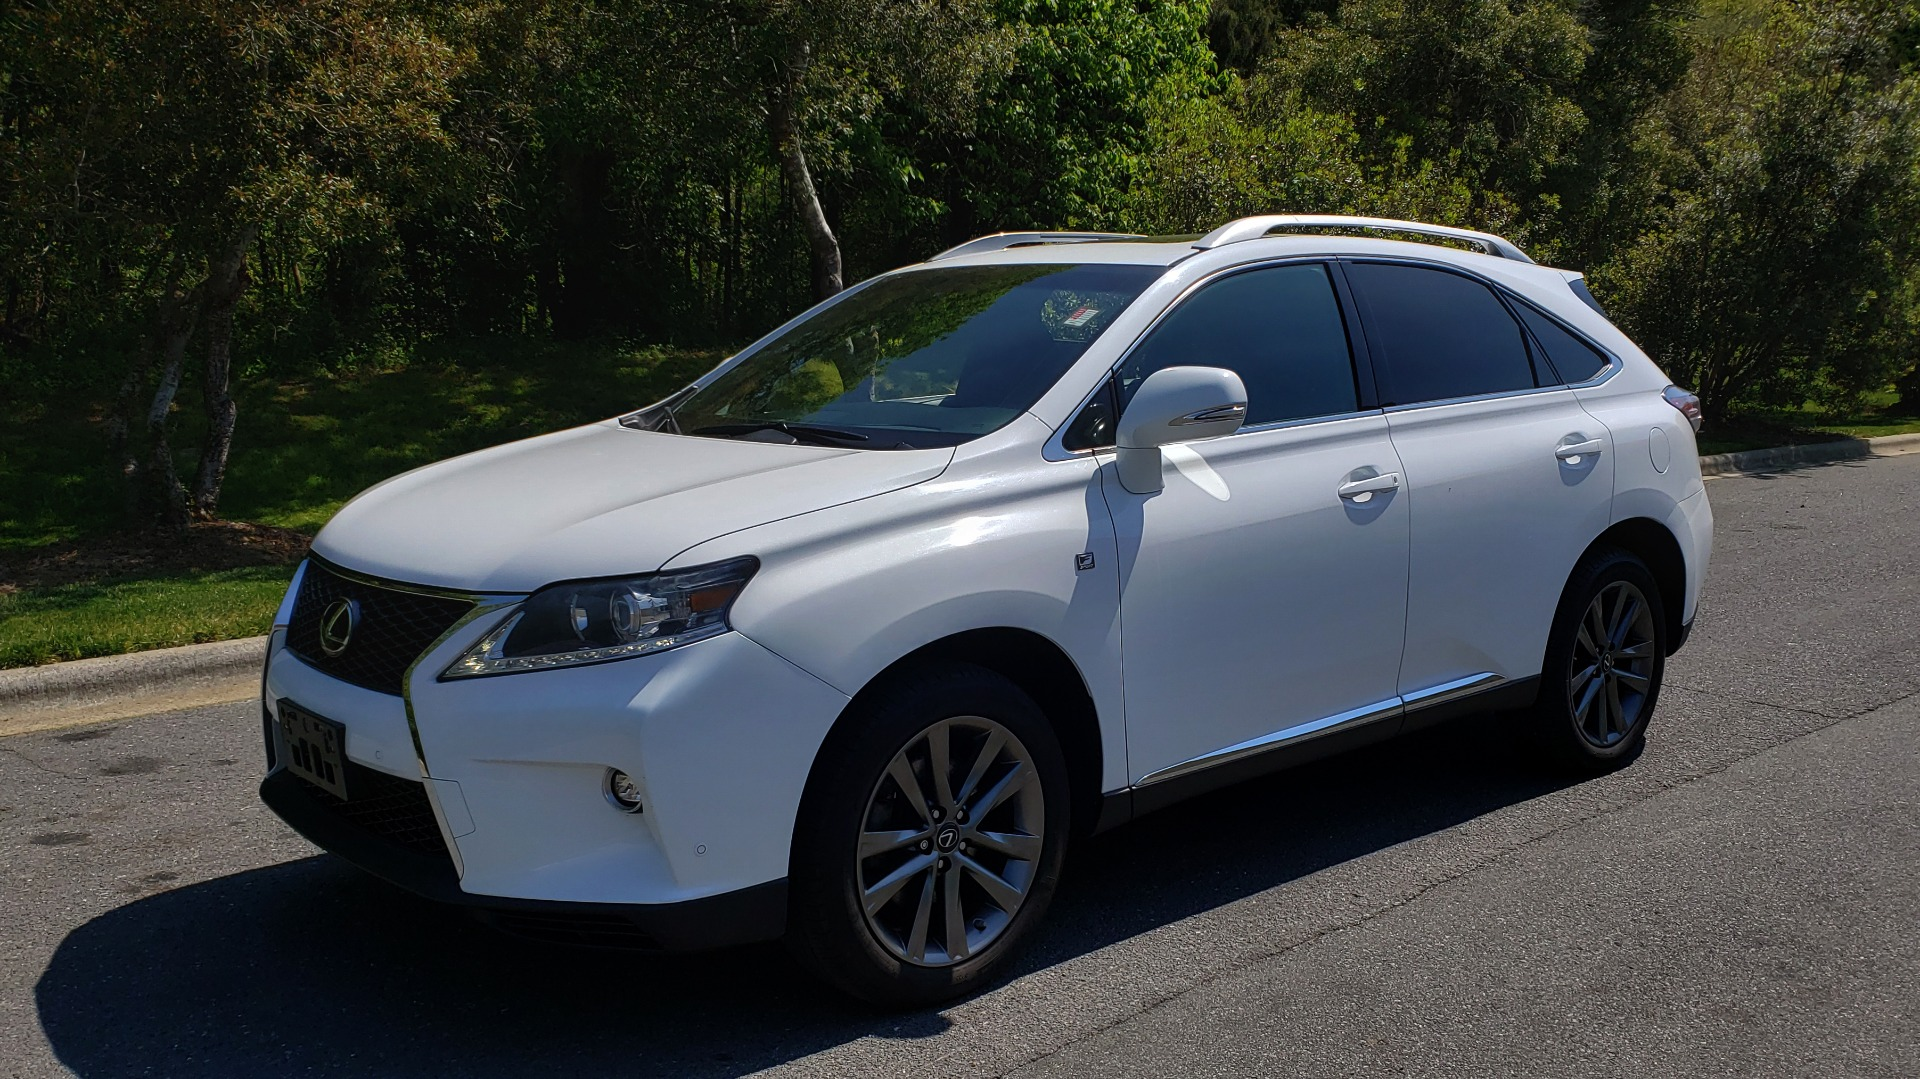 Used 2015 Lexus RX 350 AWD F-SPORT / NAV / SUNBROOF / REARVIEW / BSM / PARK ASST for sale Sold at Formula Imports in Charlotte NC 28227 1